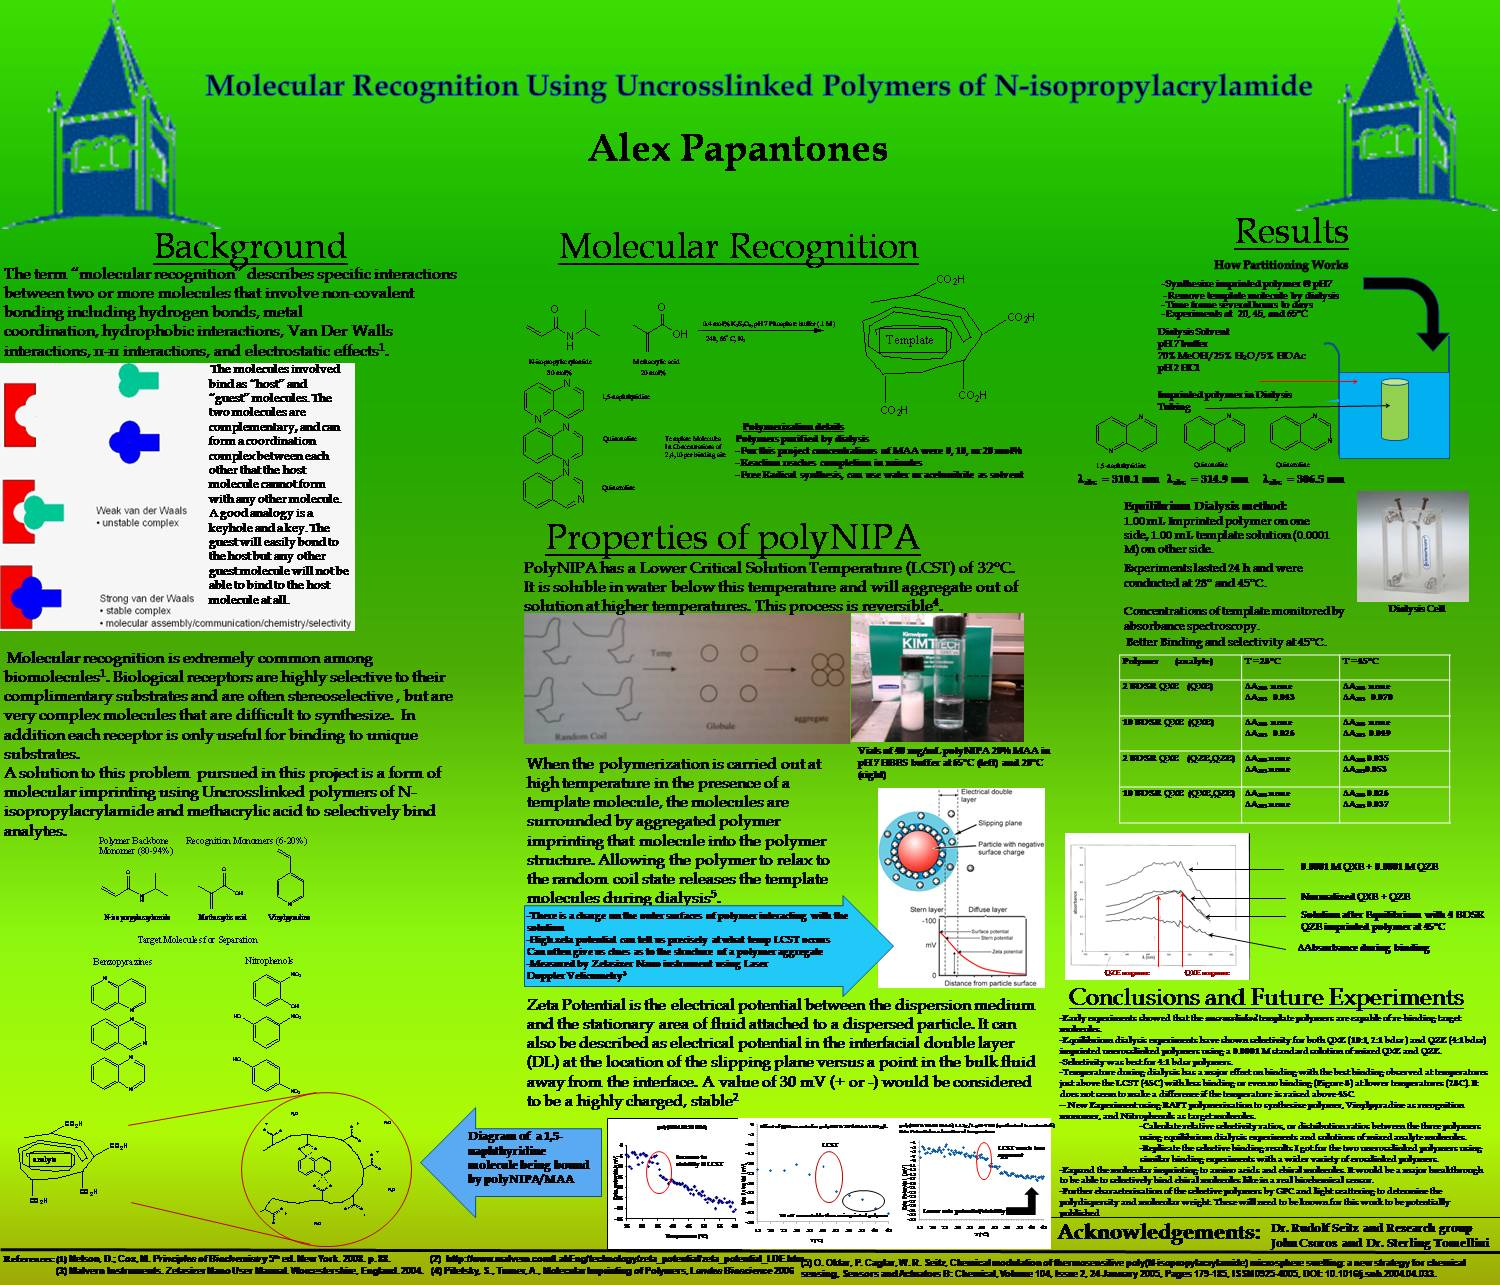 Molecular Recognition Using Uncrosslinked Polymers Of N-Isopropylacrylamide by alex442